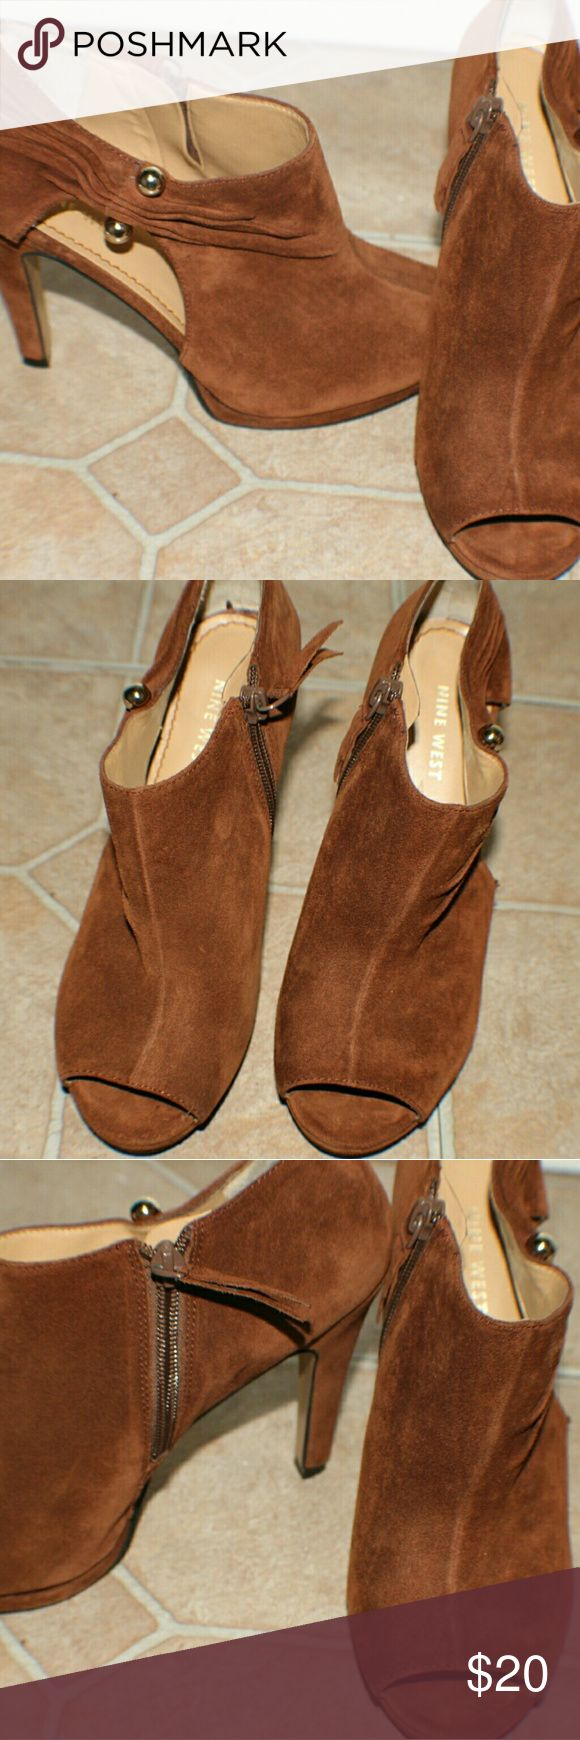 Size 6 brown NINE WEST heels Brown in color size 6 NINE WEST heels. Open toed, open heeled slender look. Adorable. Looks great with casual wear jeans or with cute summer/spring dress. Only worn a couple of times.   *FREE SHIPPING** Nine West Shoes Ankle Boots & Booties